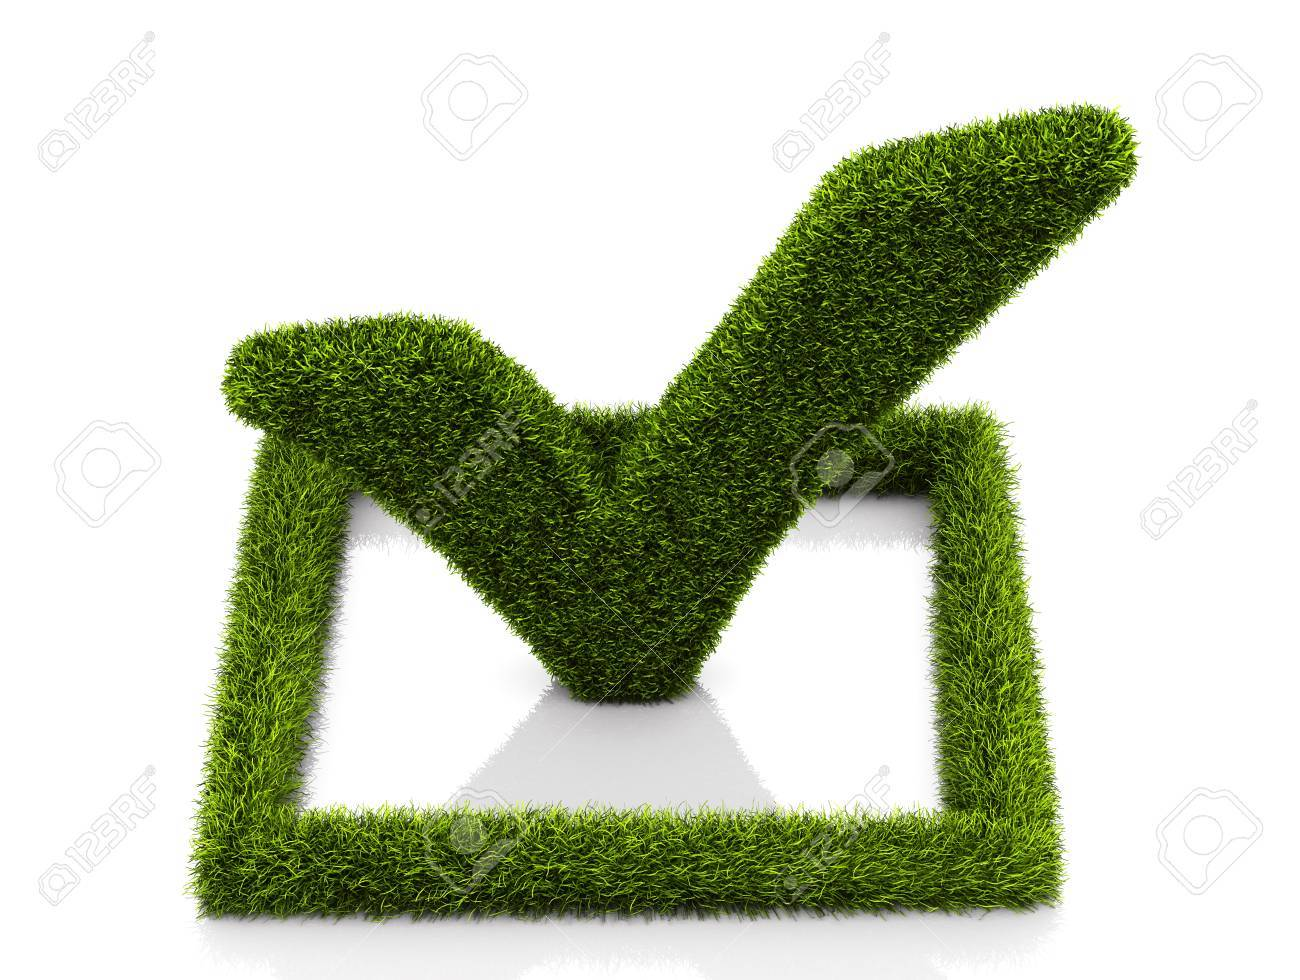 Green grassed check mark symbol in the square on white background green grassed check mark symbol in the square on white background stock photo 73120641 biocorpaavc Image collections